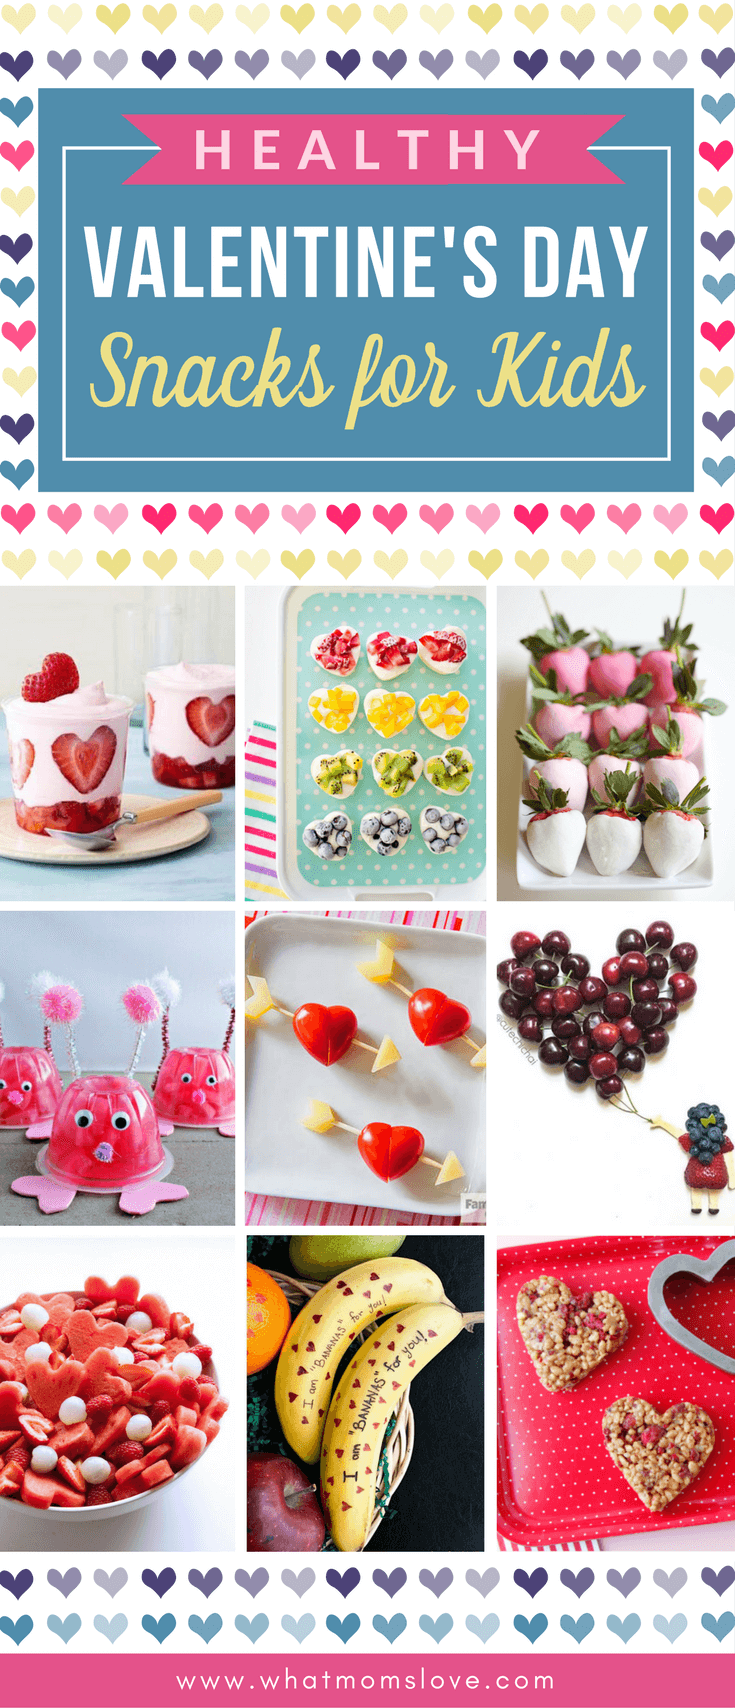 Healthy Valentines Day Snack Ideas For Kids Easy And Cute